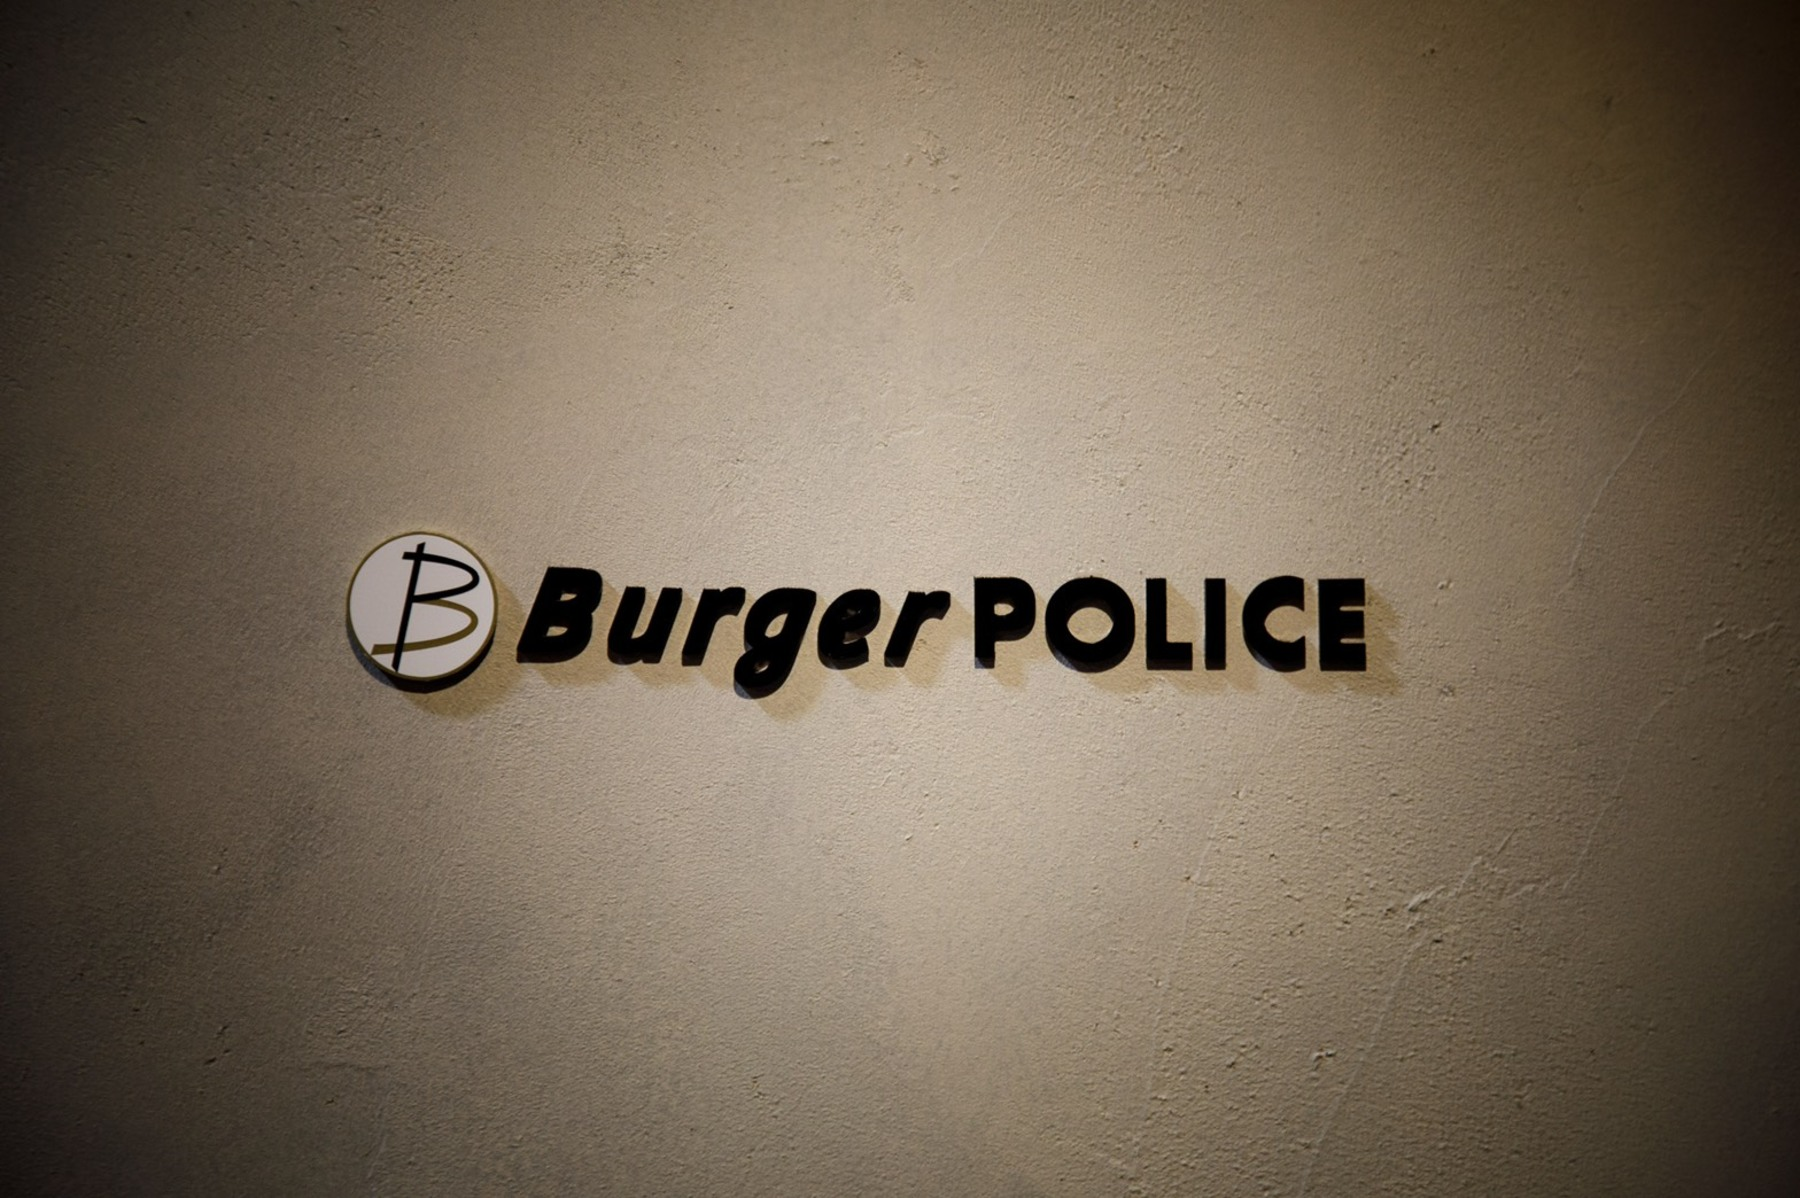 Burger POLICE's images1